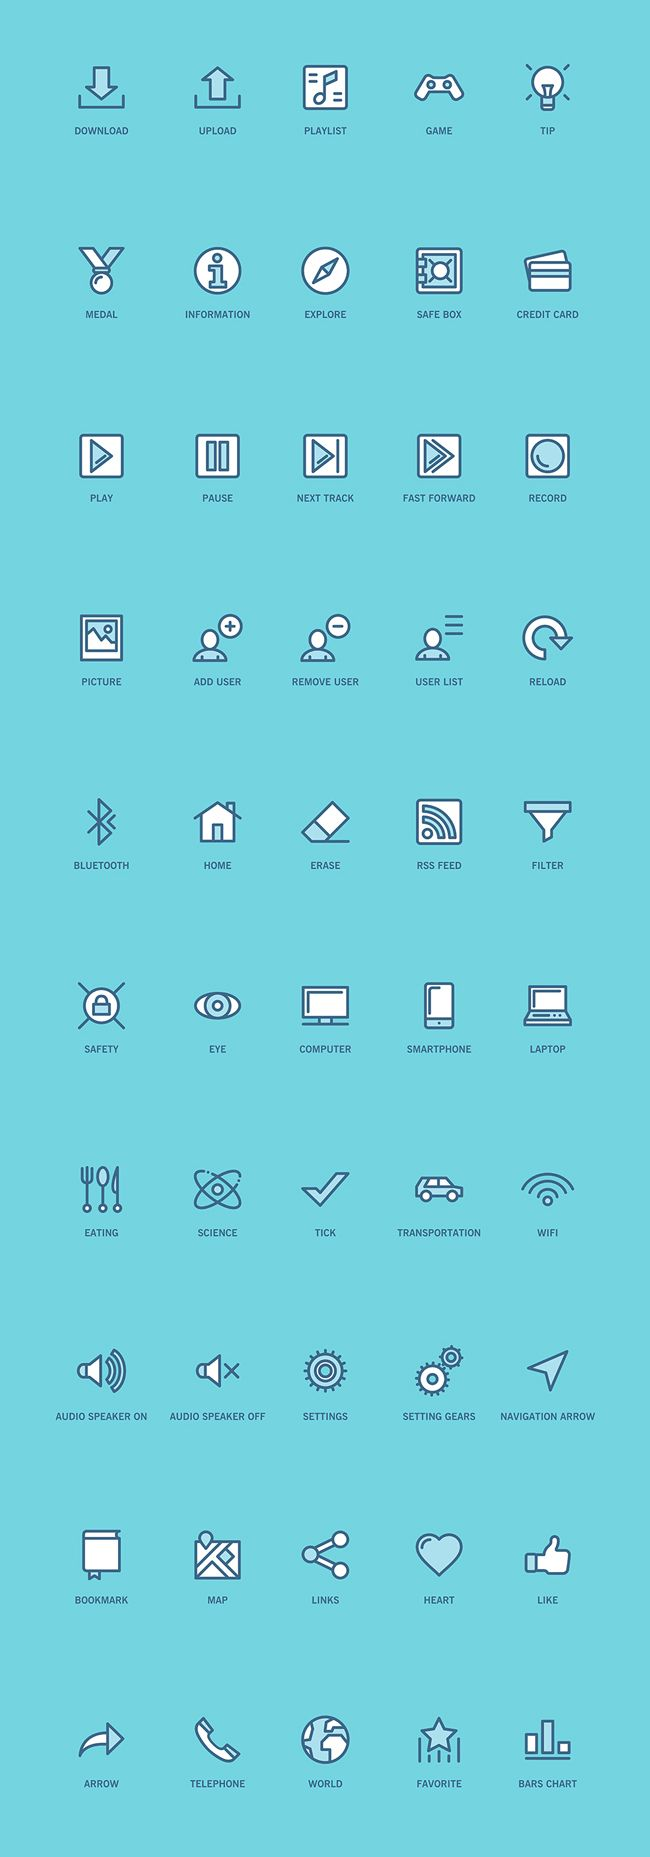 100 Free Web and App UI Icons (PSD, SVG, EPS, PNG, Iconfont)